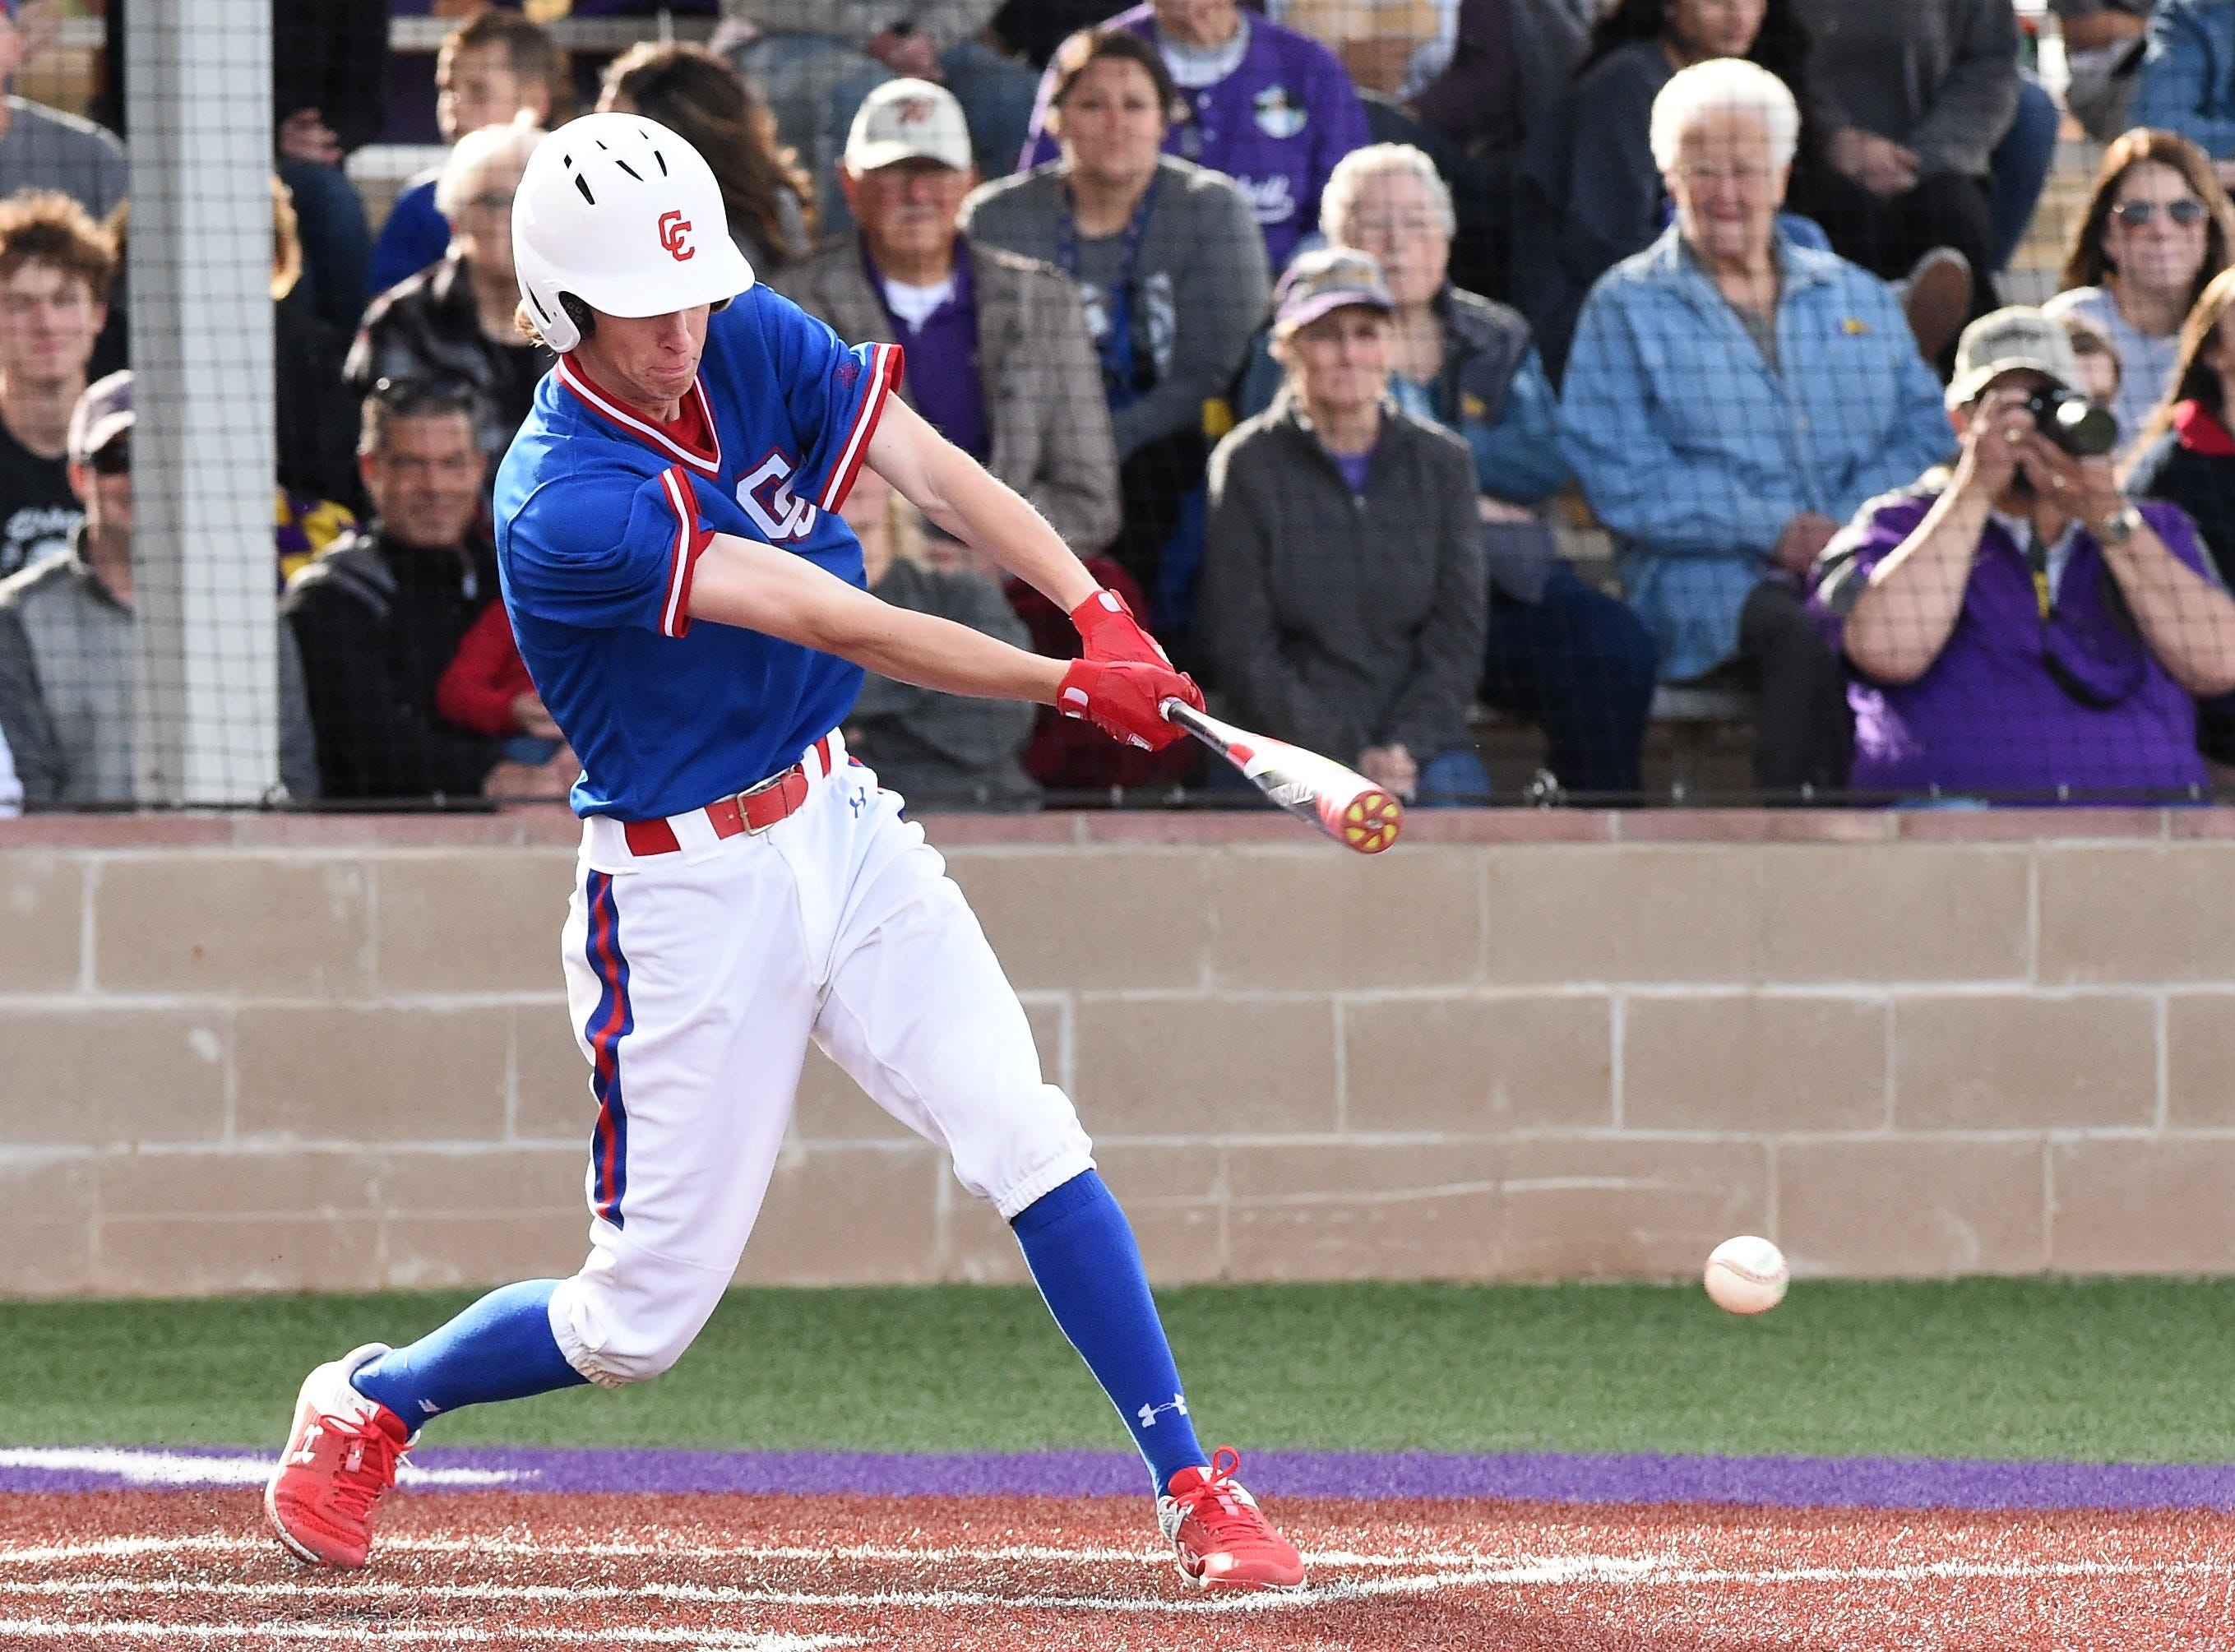 Cooper's Matthew Shira (8) puts the ball in play against Wylie at Bulldog Field on Friday, April 12, 2019. Shira earned a walk and pitched a complete-game in the 4-3 loss.